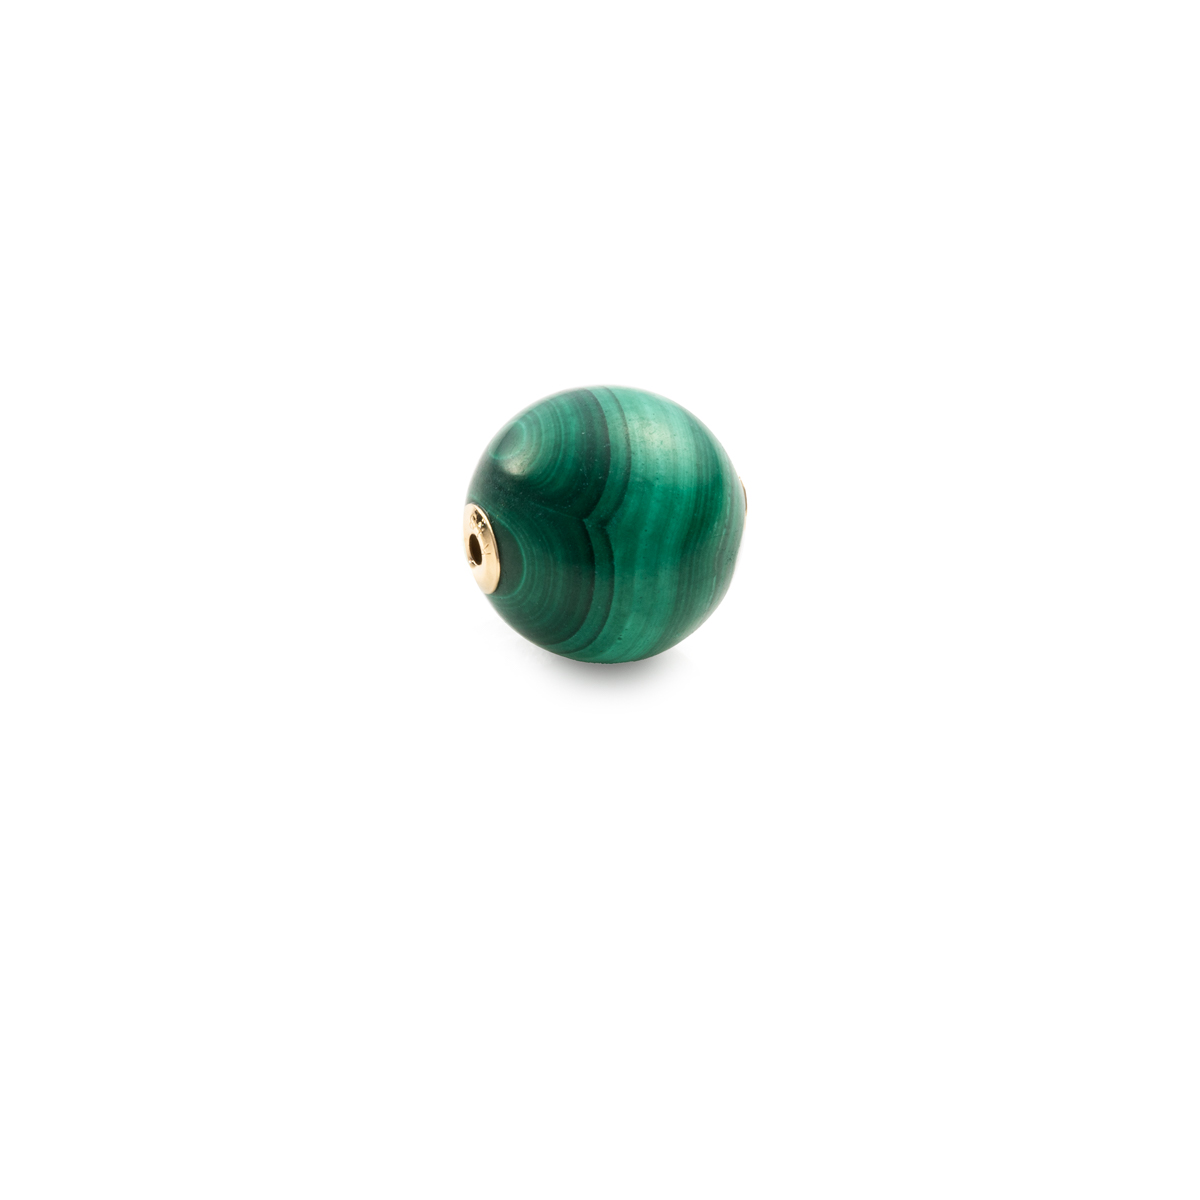 10mm Malachite Stone for Spear Earring CT37GCC 単品パーツ マラカイト